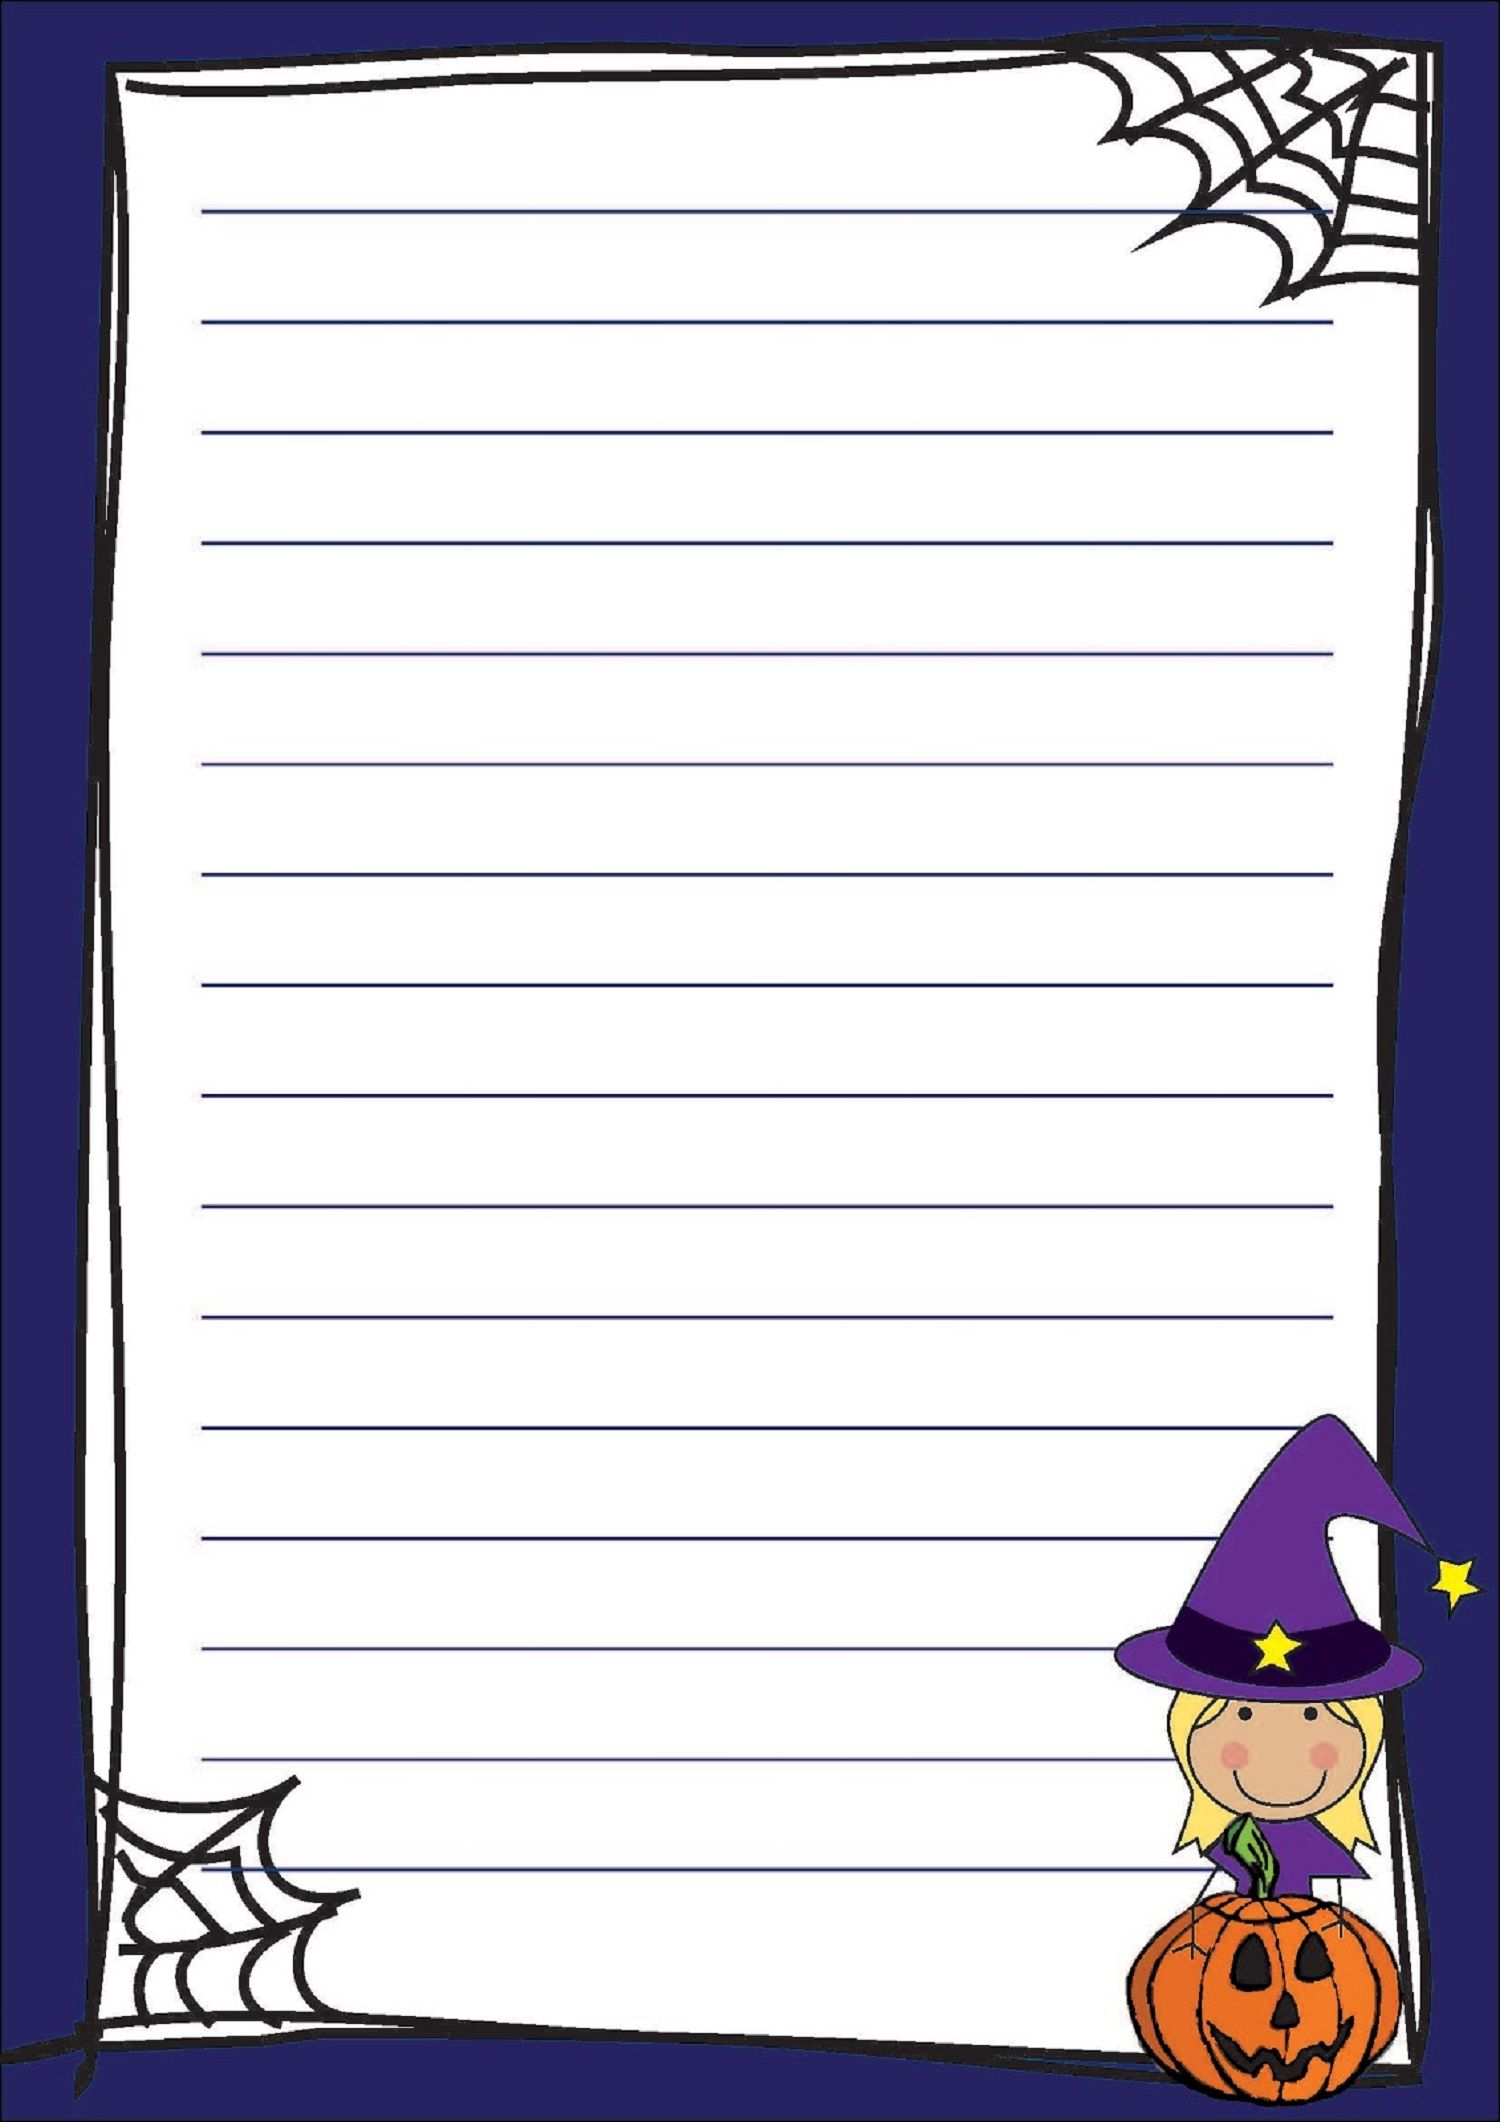 Lined Paper for Kids for Writing Fancy Stuff – School Writing Paper Template